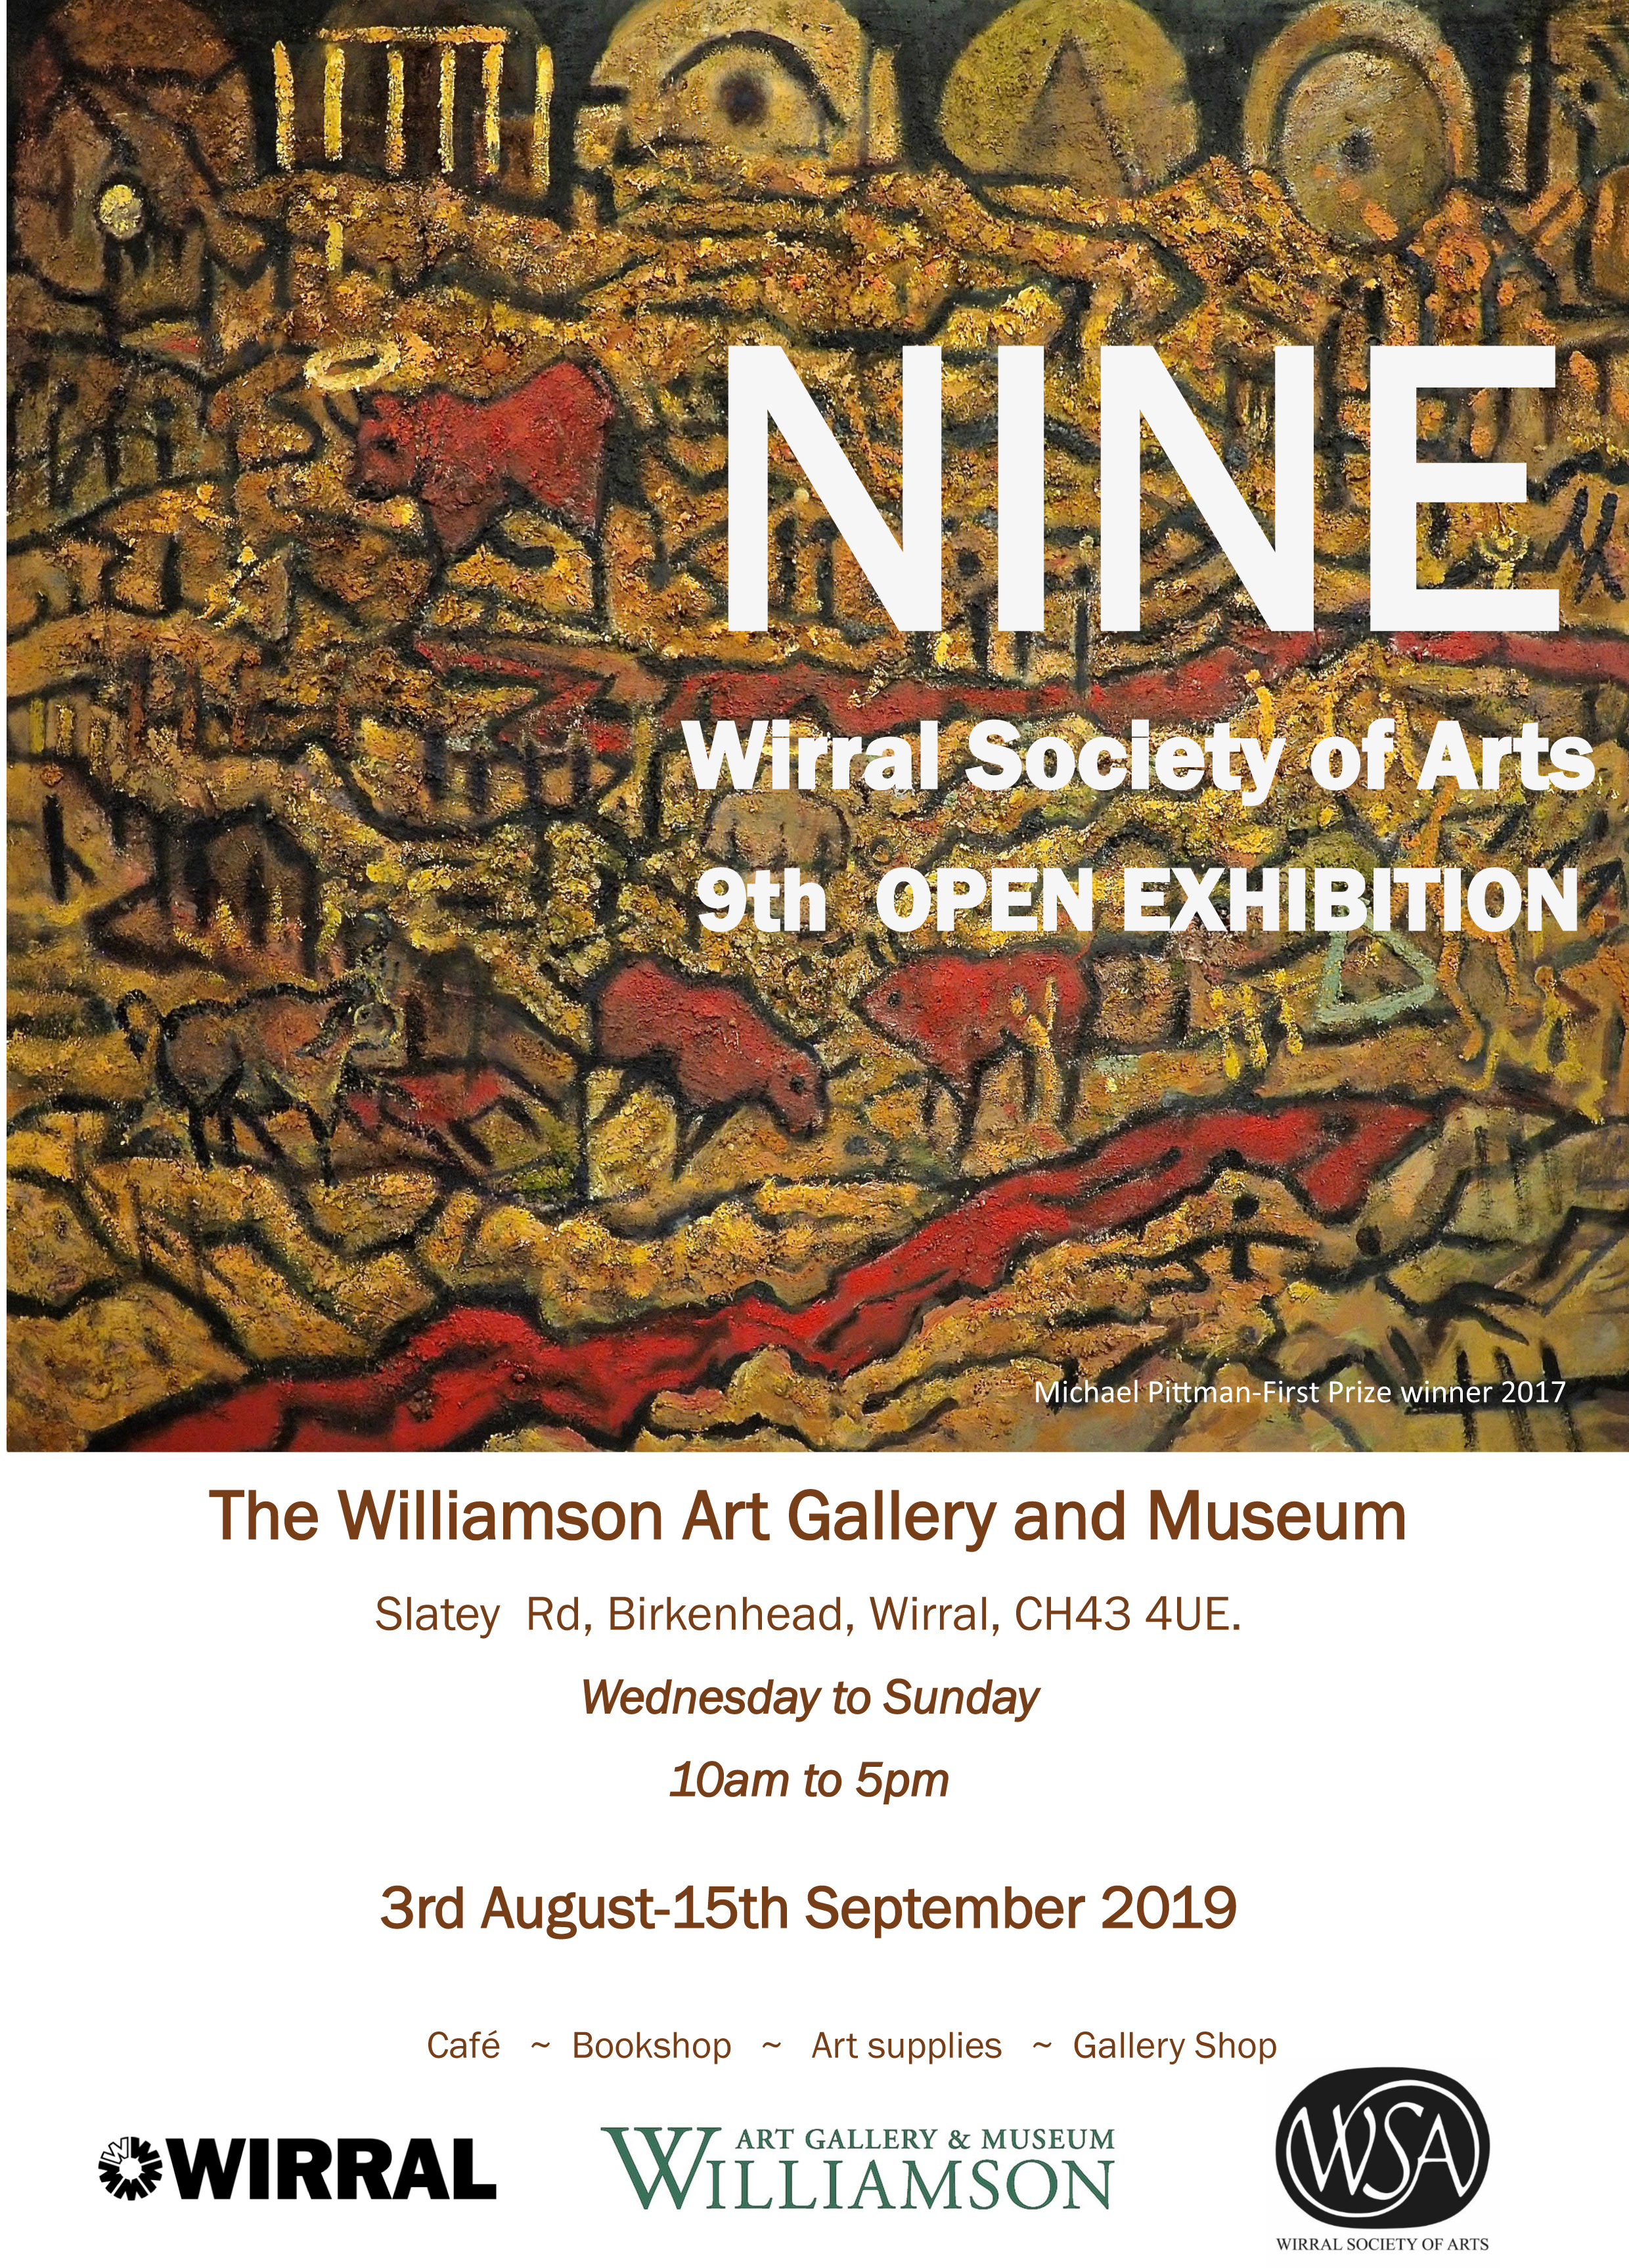 Williamson Art Gallery & Museum: Wirral Society of Arts 9th Open Exhibition